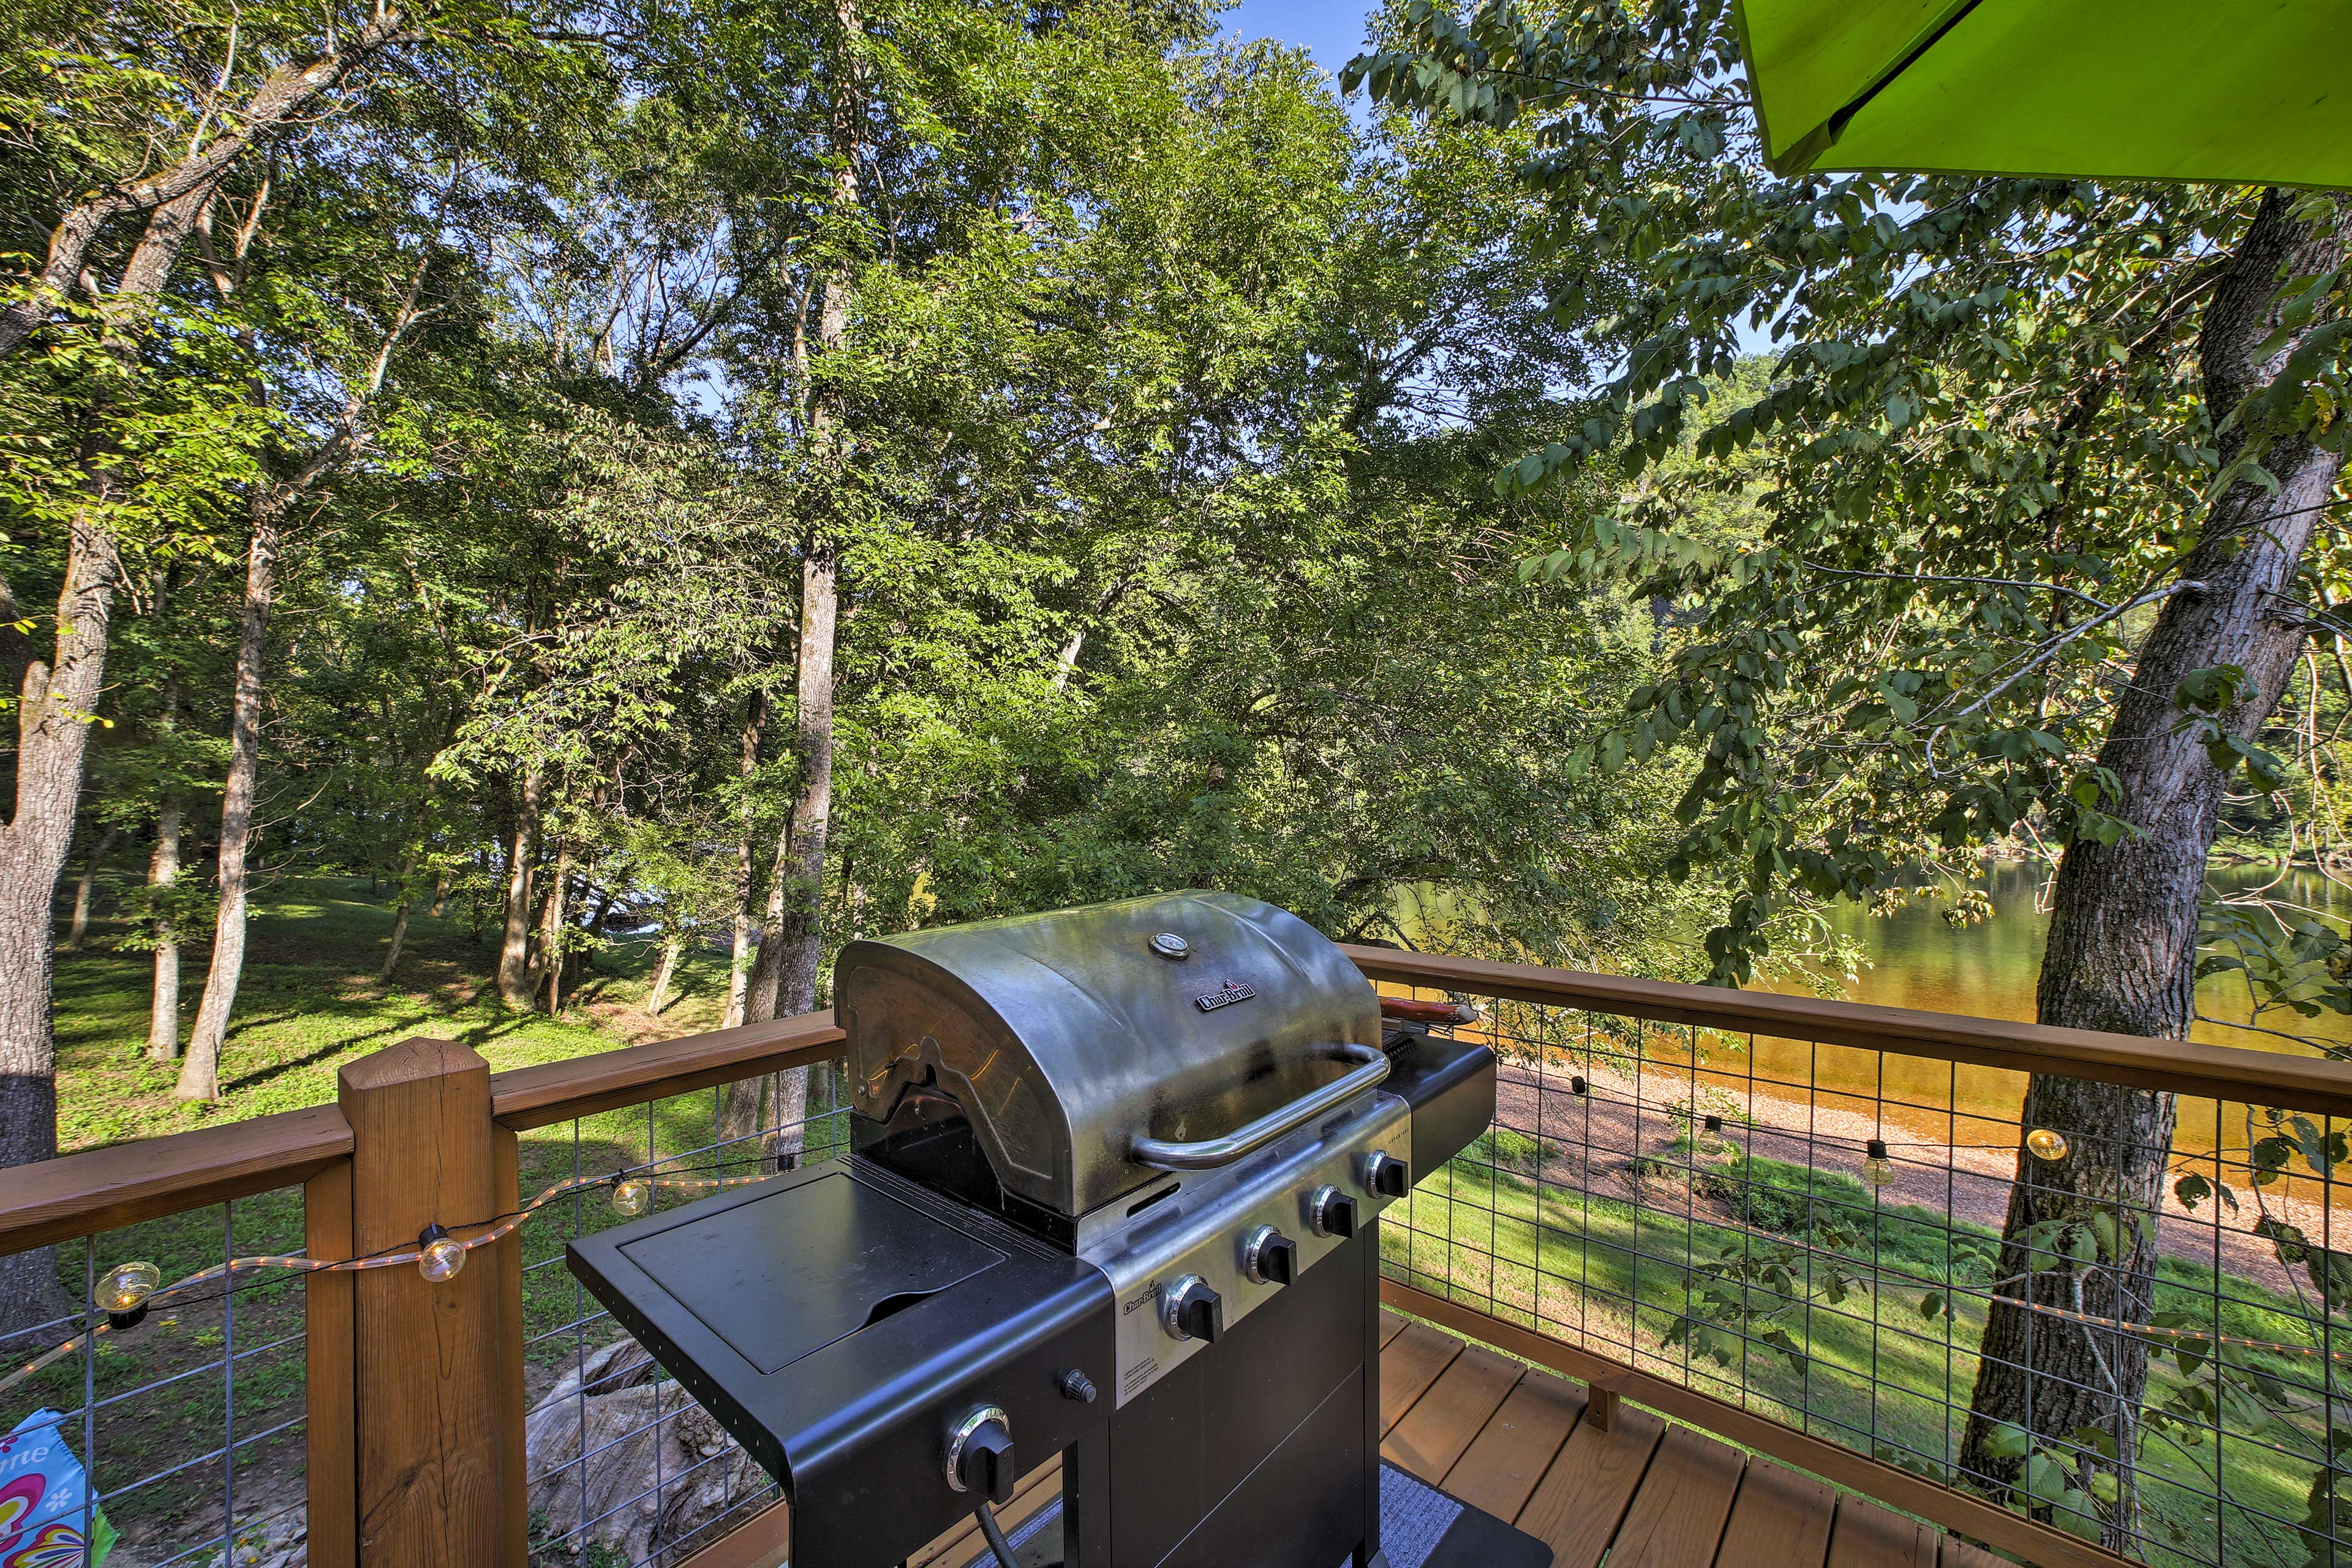 Fire up the modern gas grill to enjoy a feast on the deck!